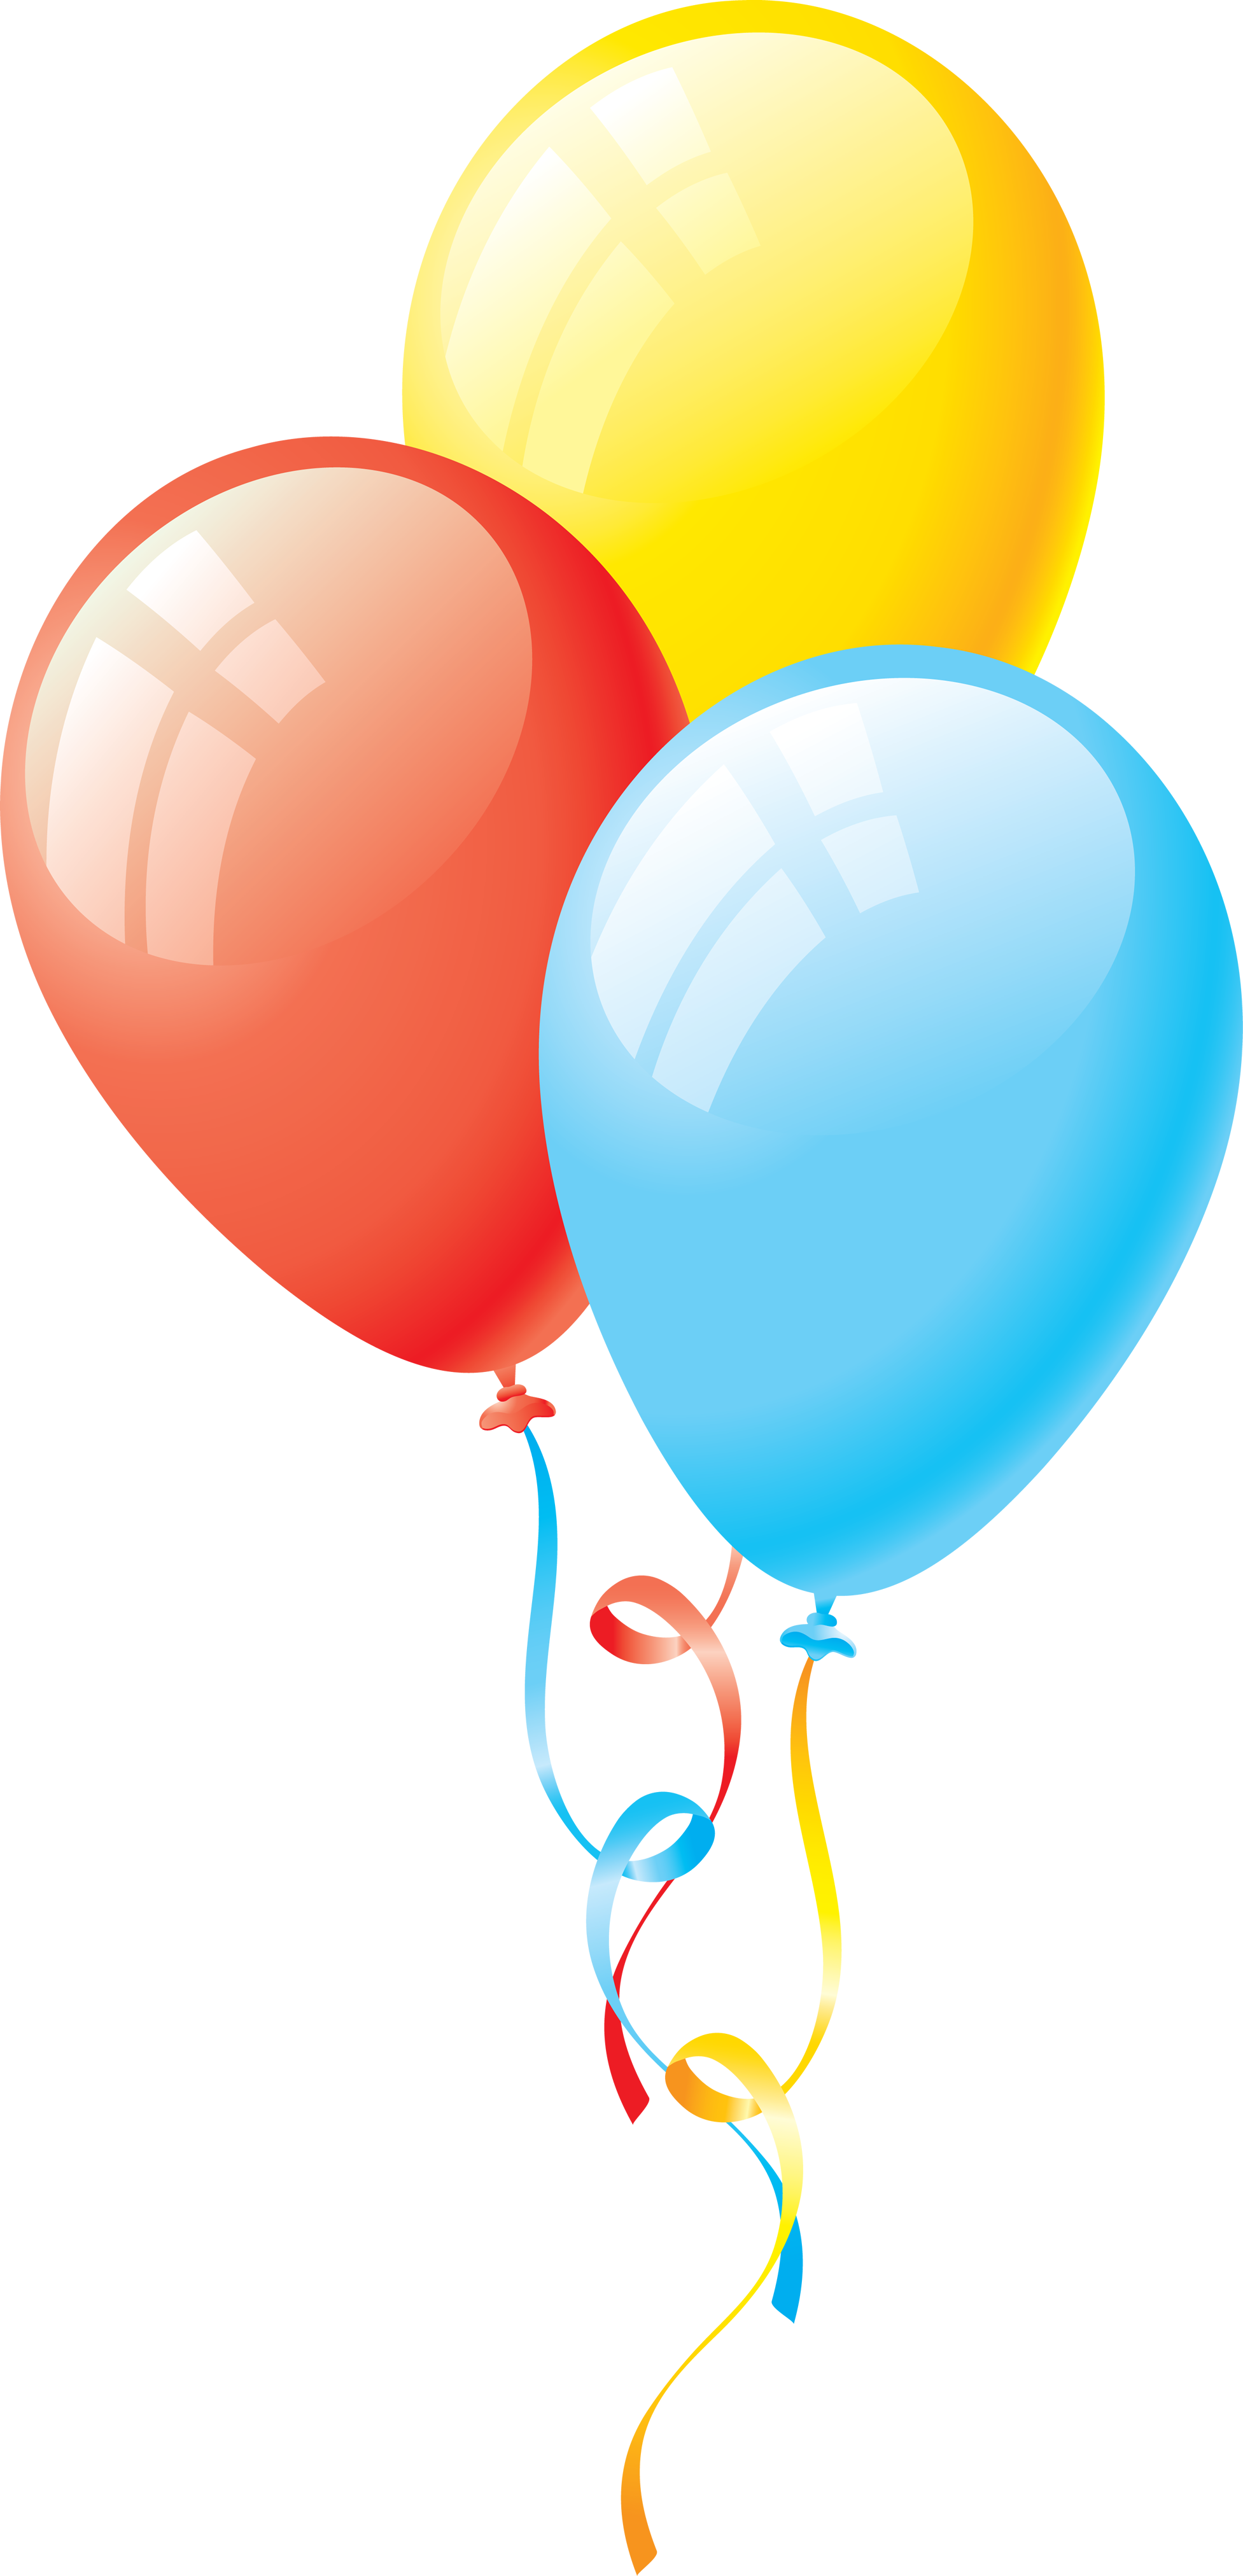 birthday balloon clipart at getdrawings com free for personal use rh getdrawings com balloons clip art transparent background balloons clip art free images